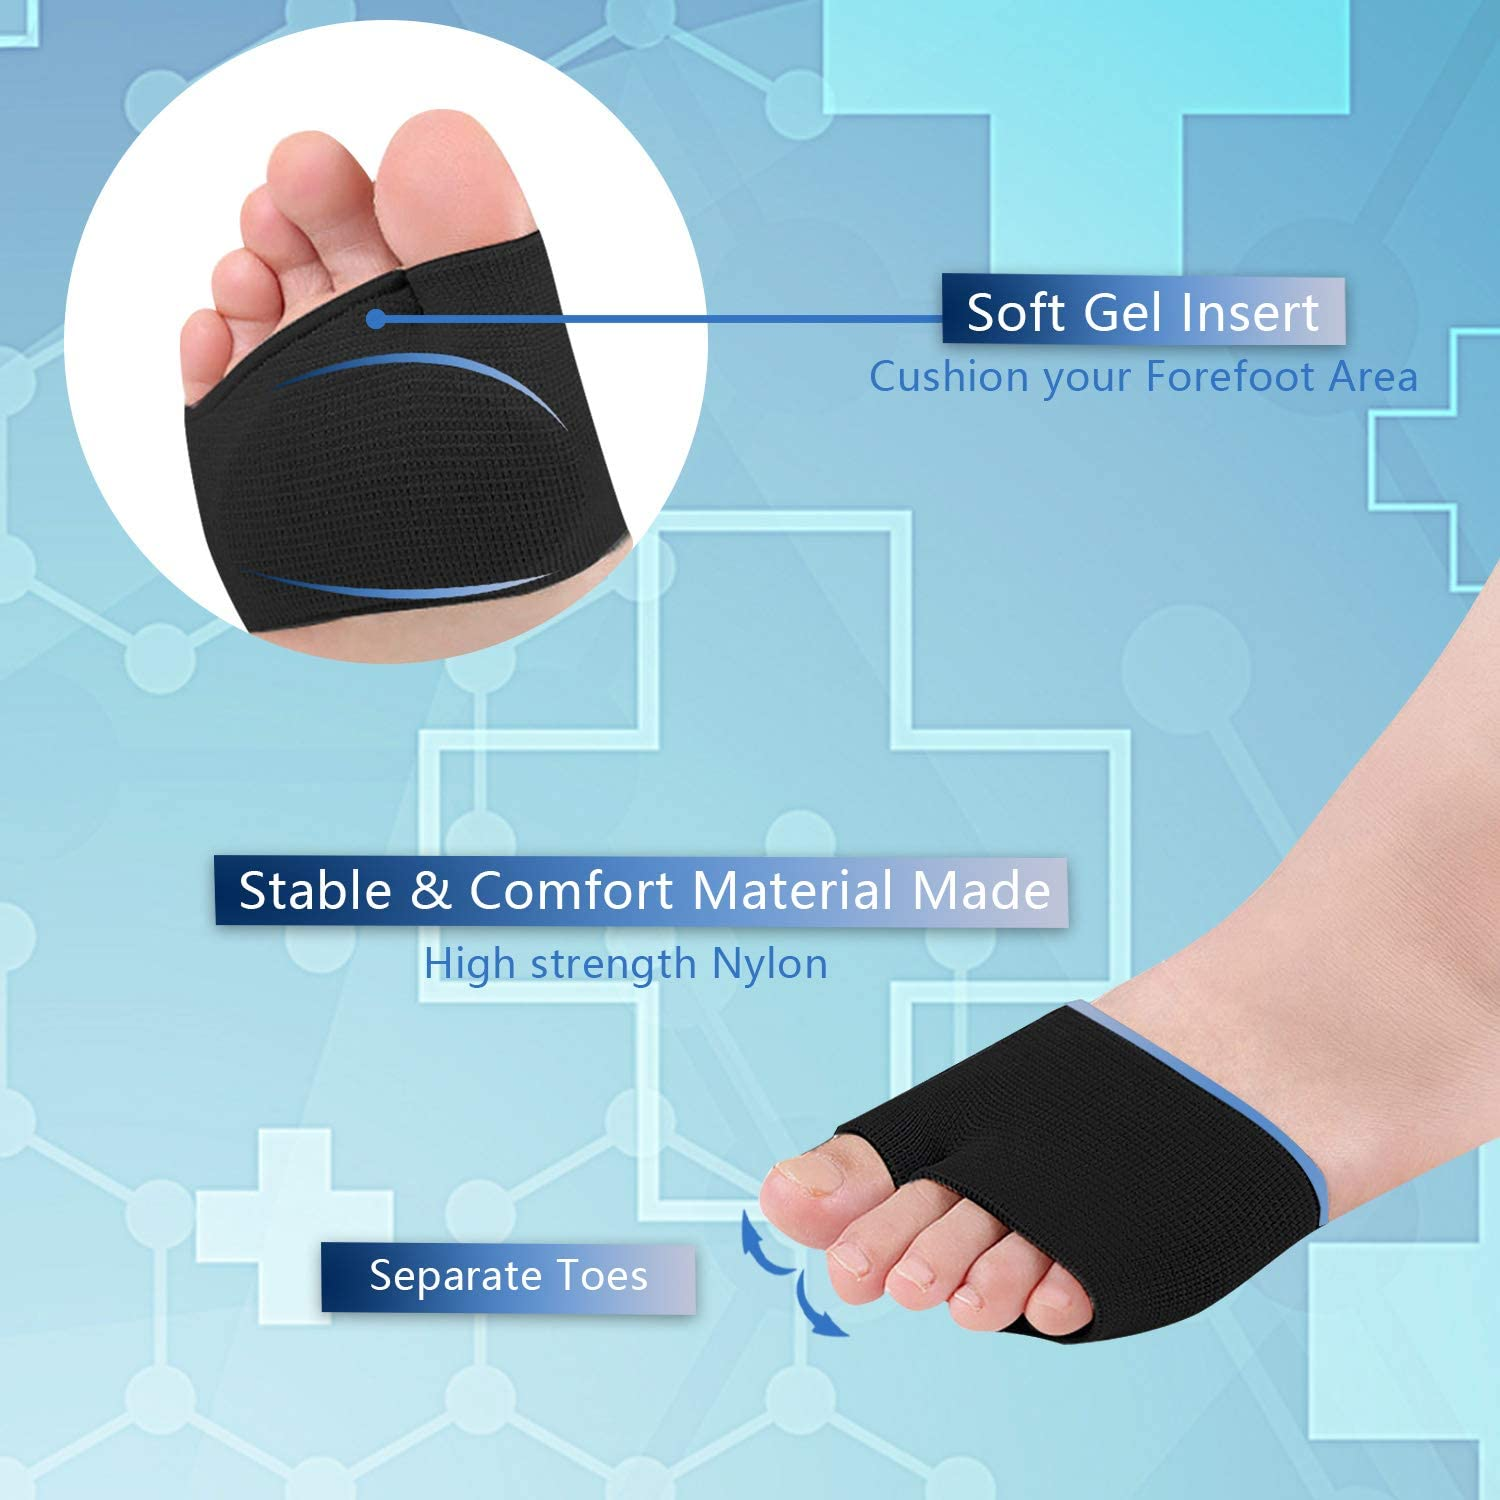 Metatarsal Sleeve Pads with Forefoot Gel Pads - 2 Pairs - Ball of Foot Cushion for Relieve Metatarsalgia Mortons Neuroma Diabetic Feet Pain (Black- M (Women's Size 5-7.5)): Health & Personal Care